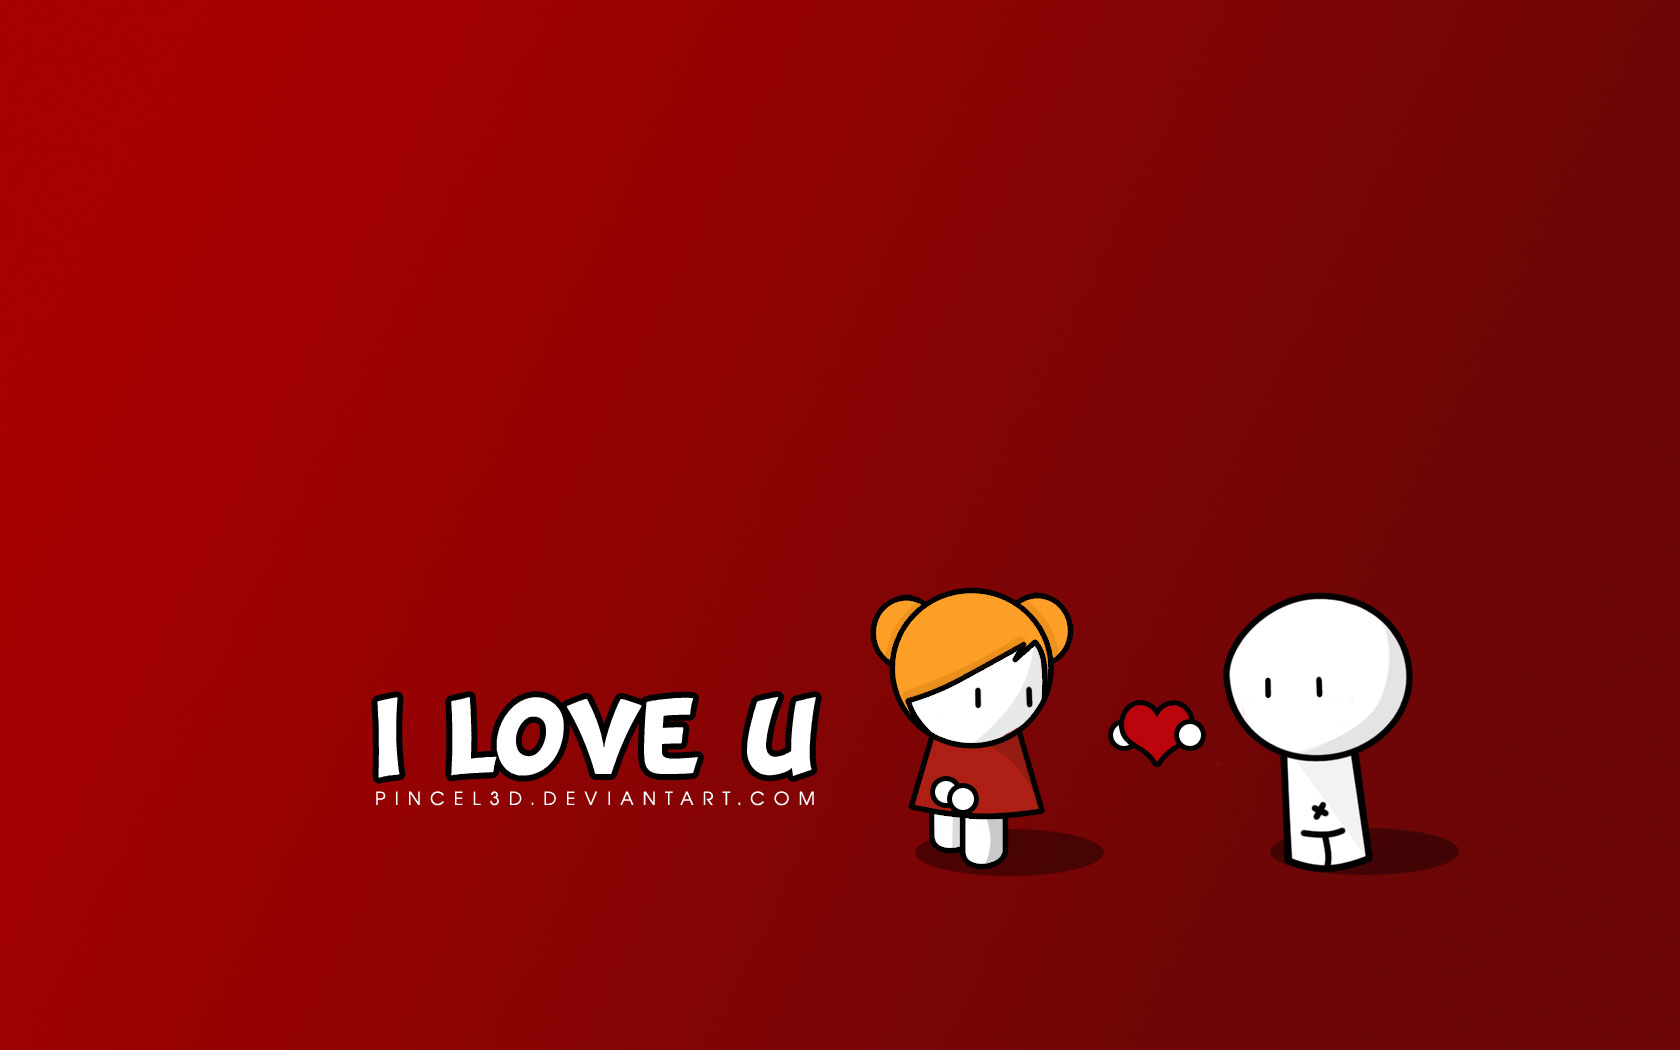 I Love You Wallpaper For Pc : I Love You Wallpapers HD A40 - HD Desktop Wallpapers 4k HD